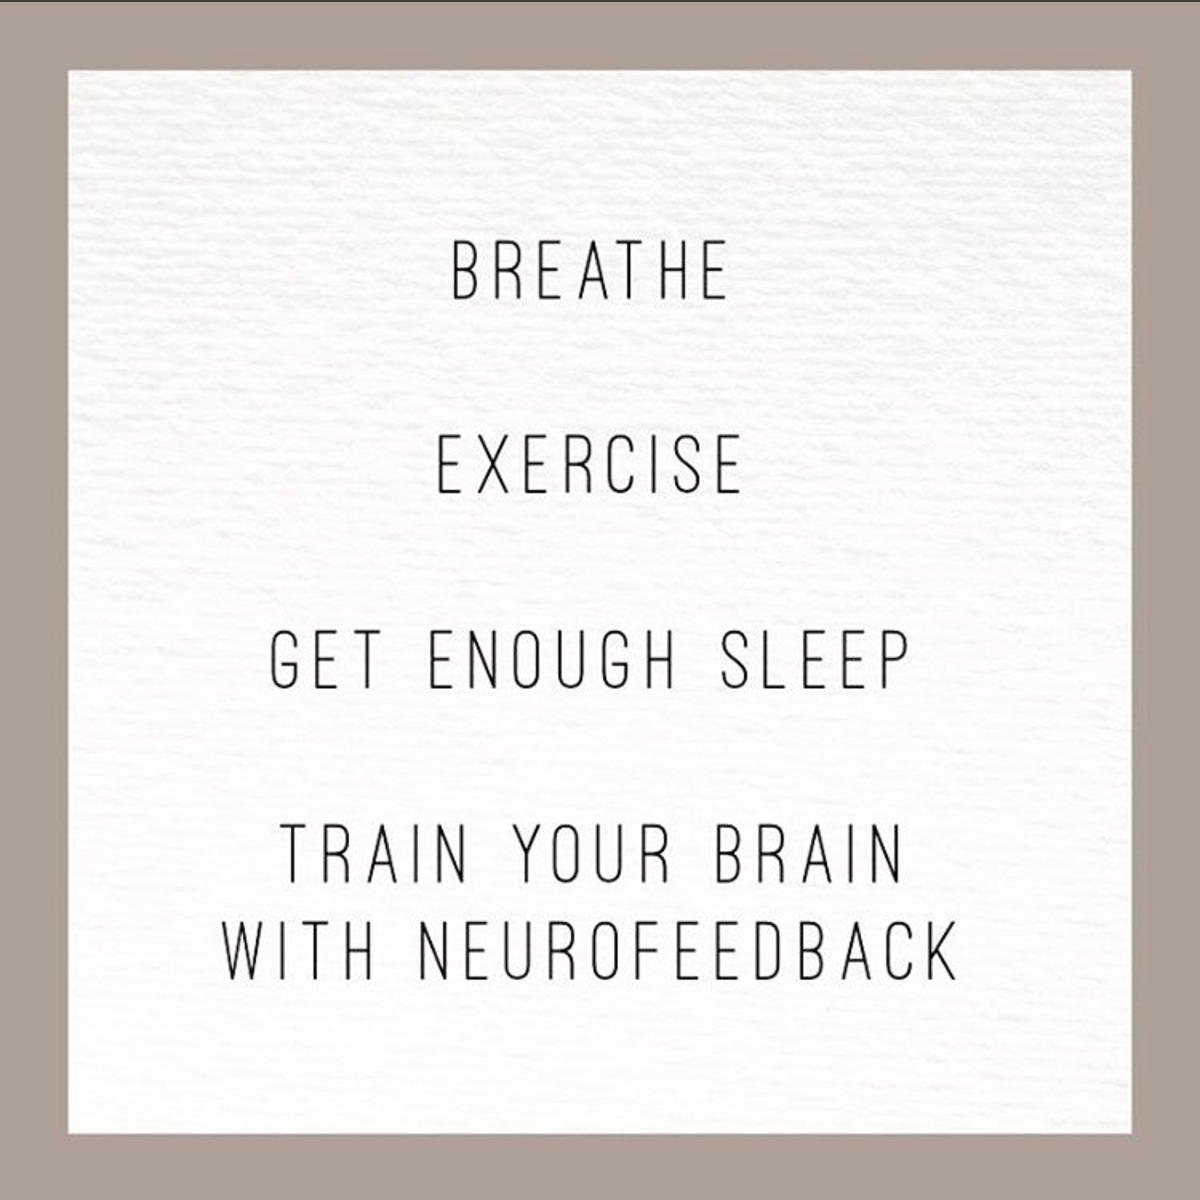 Self-regulate tips neurofeedback results